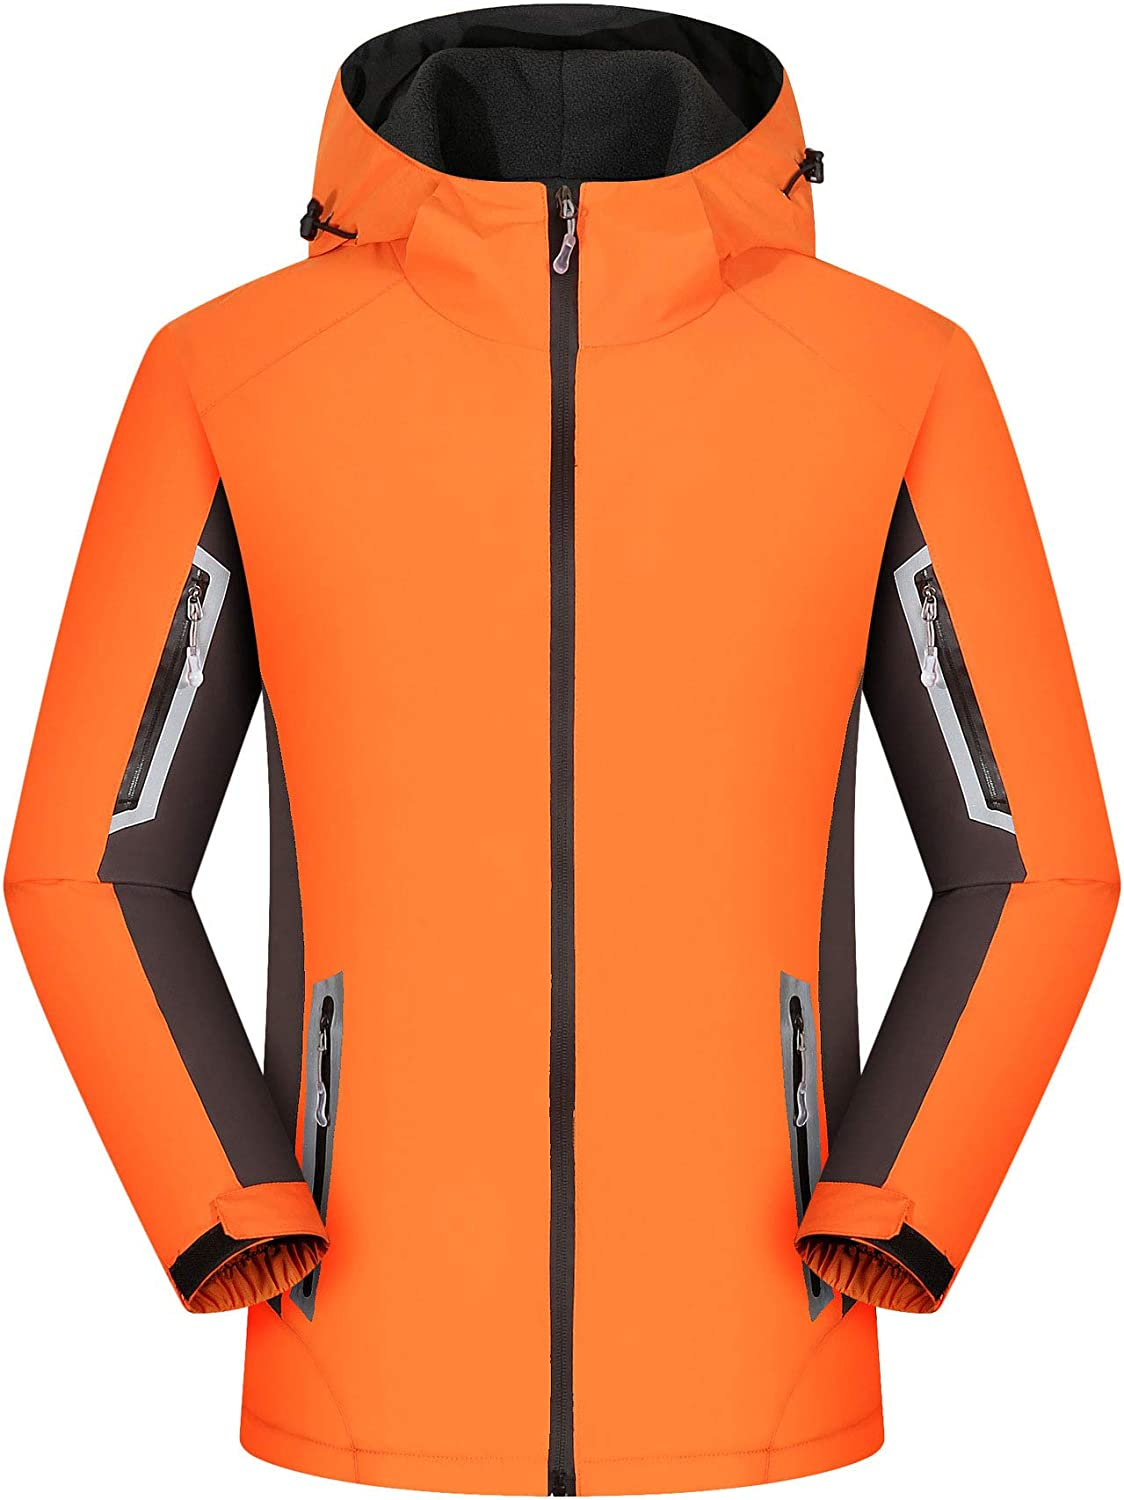 Huanxin Men's Outdoor Fleece Jackets Waterproof Softshell Jackets, Mens Women Casual Travel Jacket Breathable Working Coats with Multi Pockets,C,M